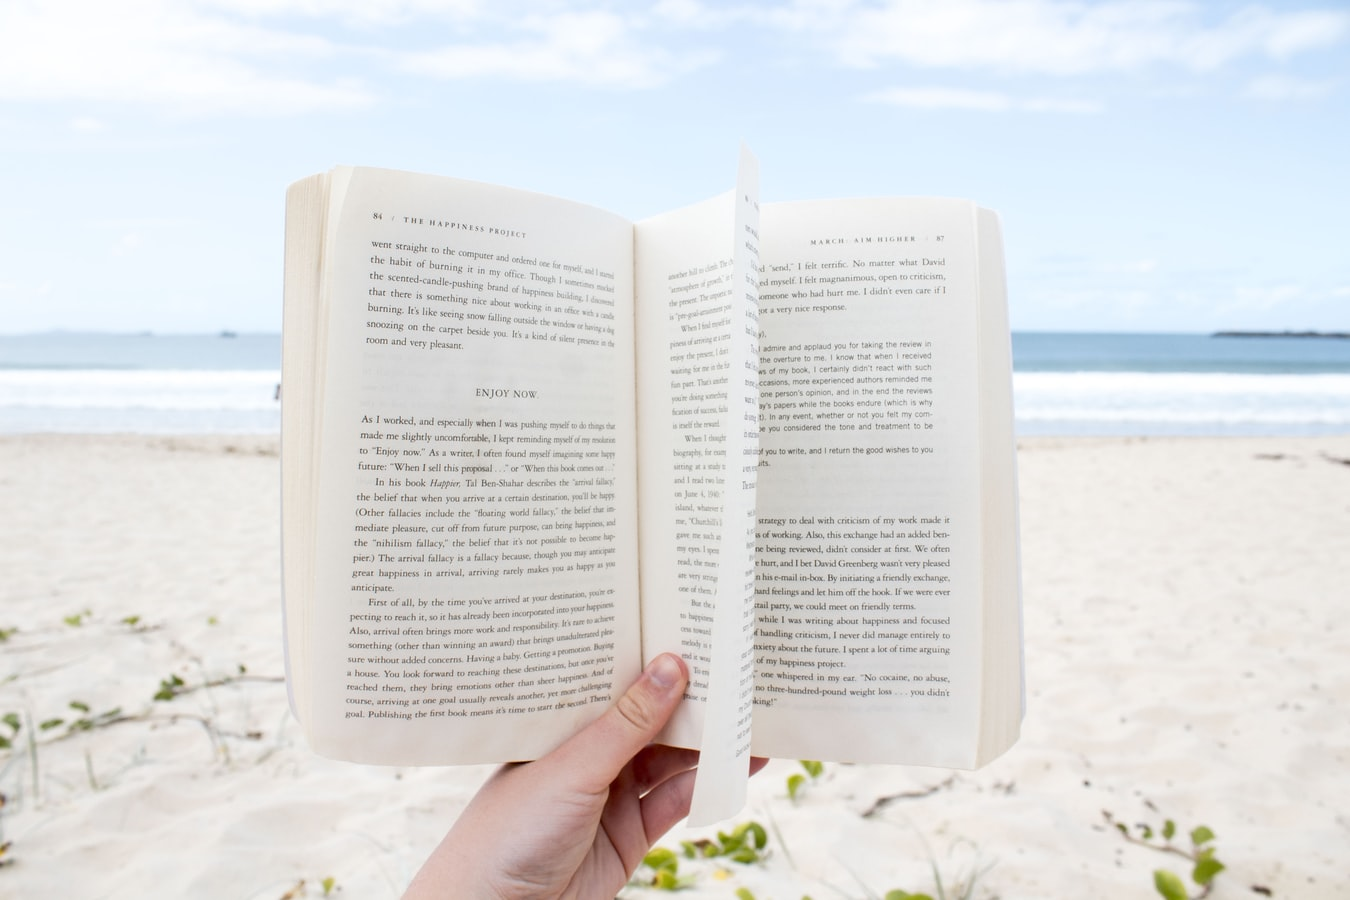 Person holding book at the beach